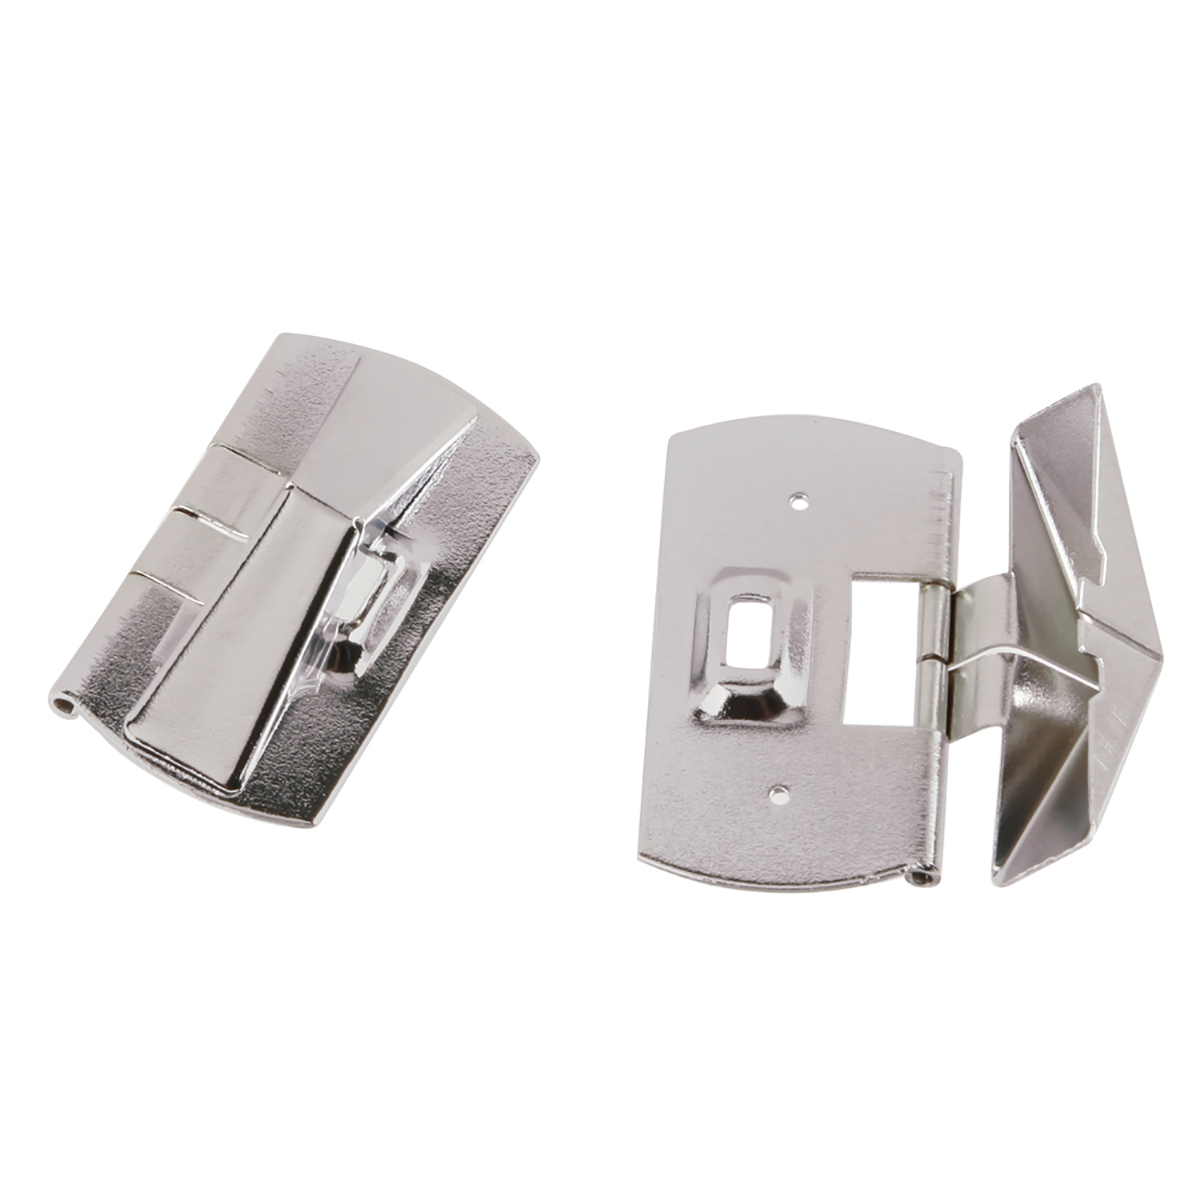 Window Vent Lock First Watch Security